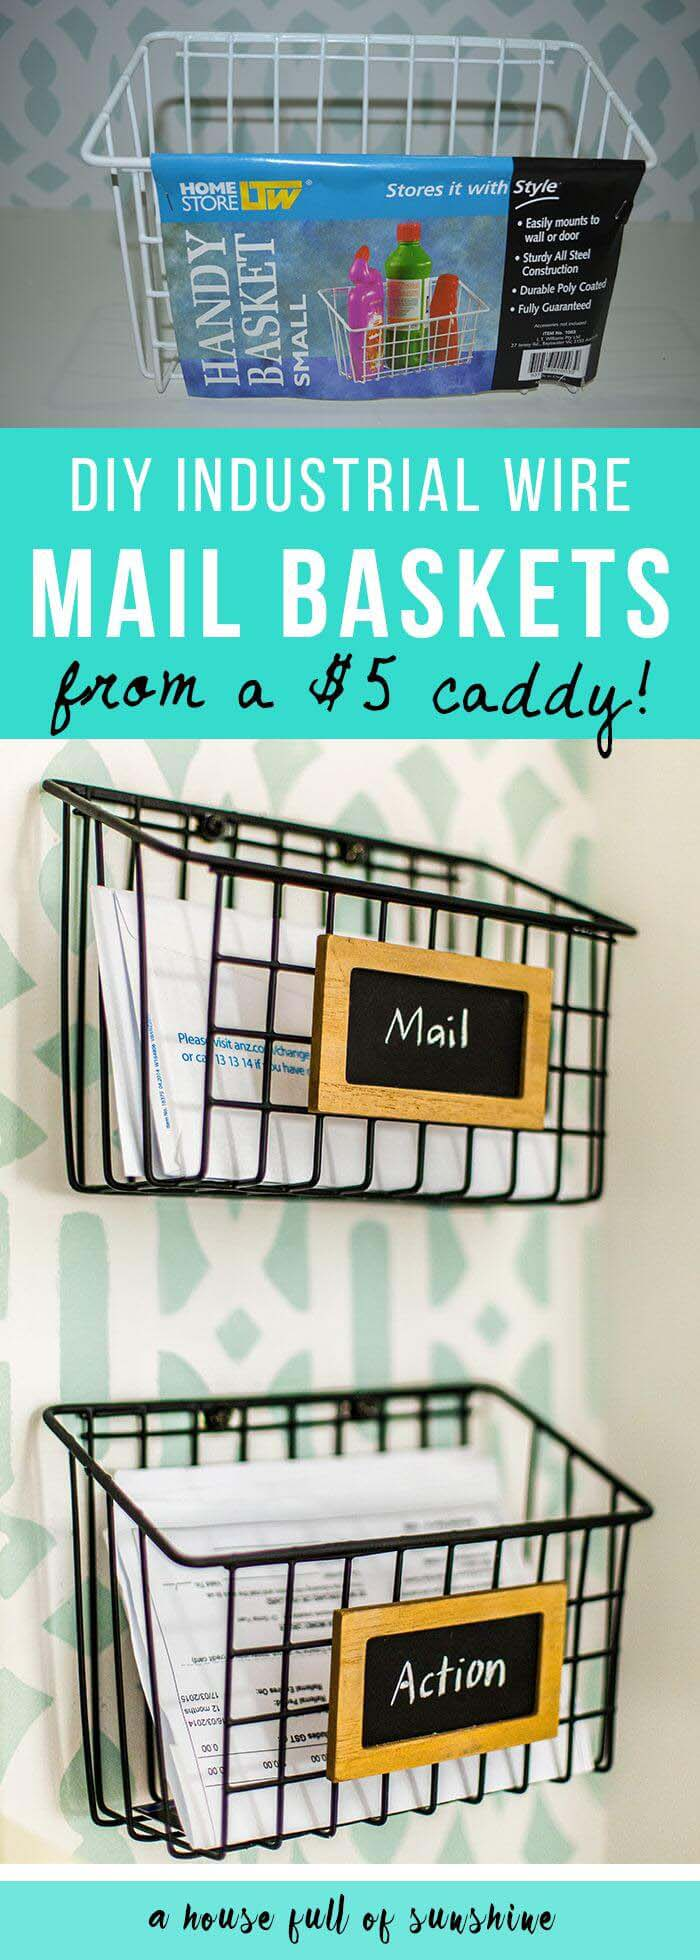 $5 DIY Mail Sorting Baskets #dollarstore #diy #homedecor #decorhomeideas